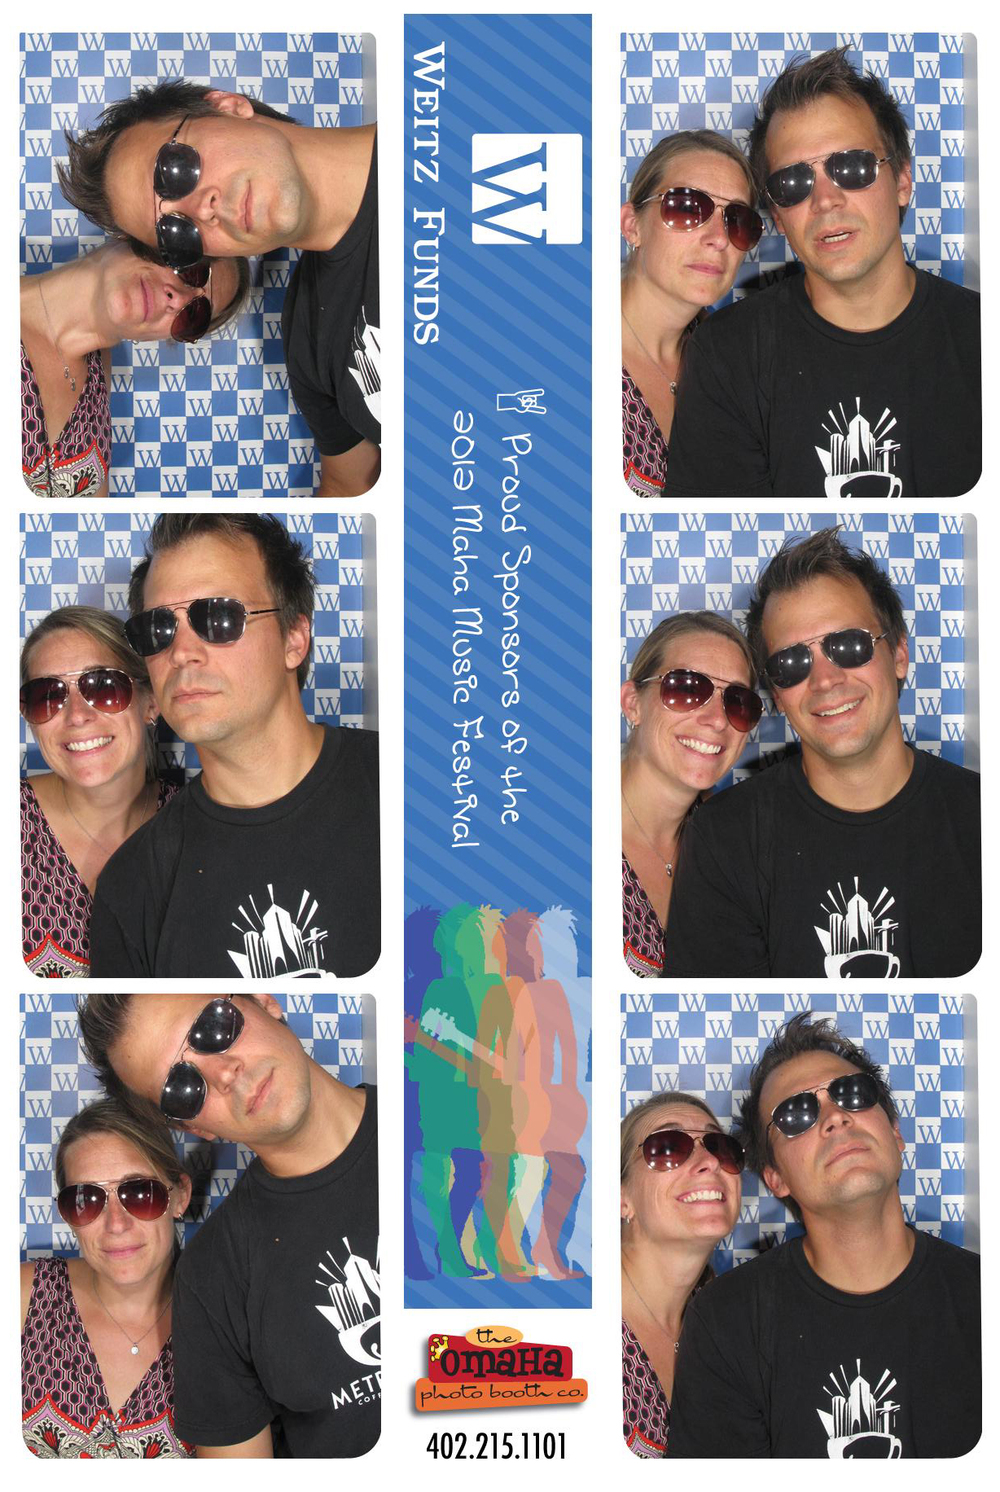 Corporate Private Party Photo Booth Rental Omaha